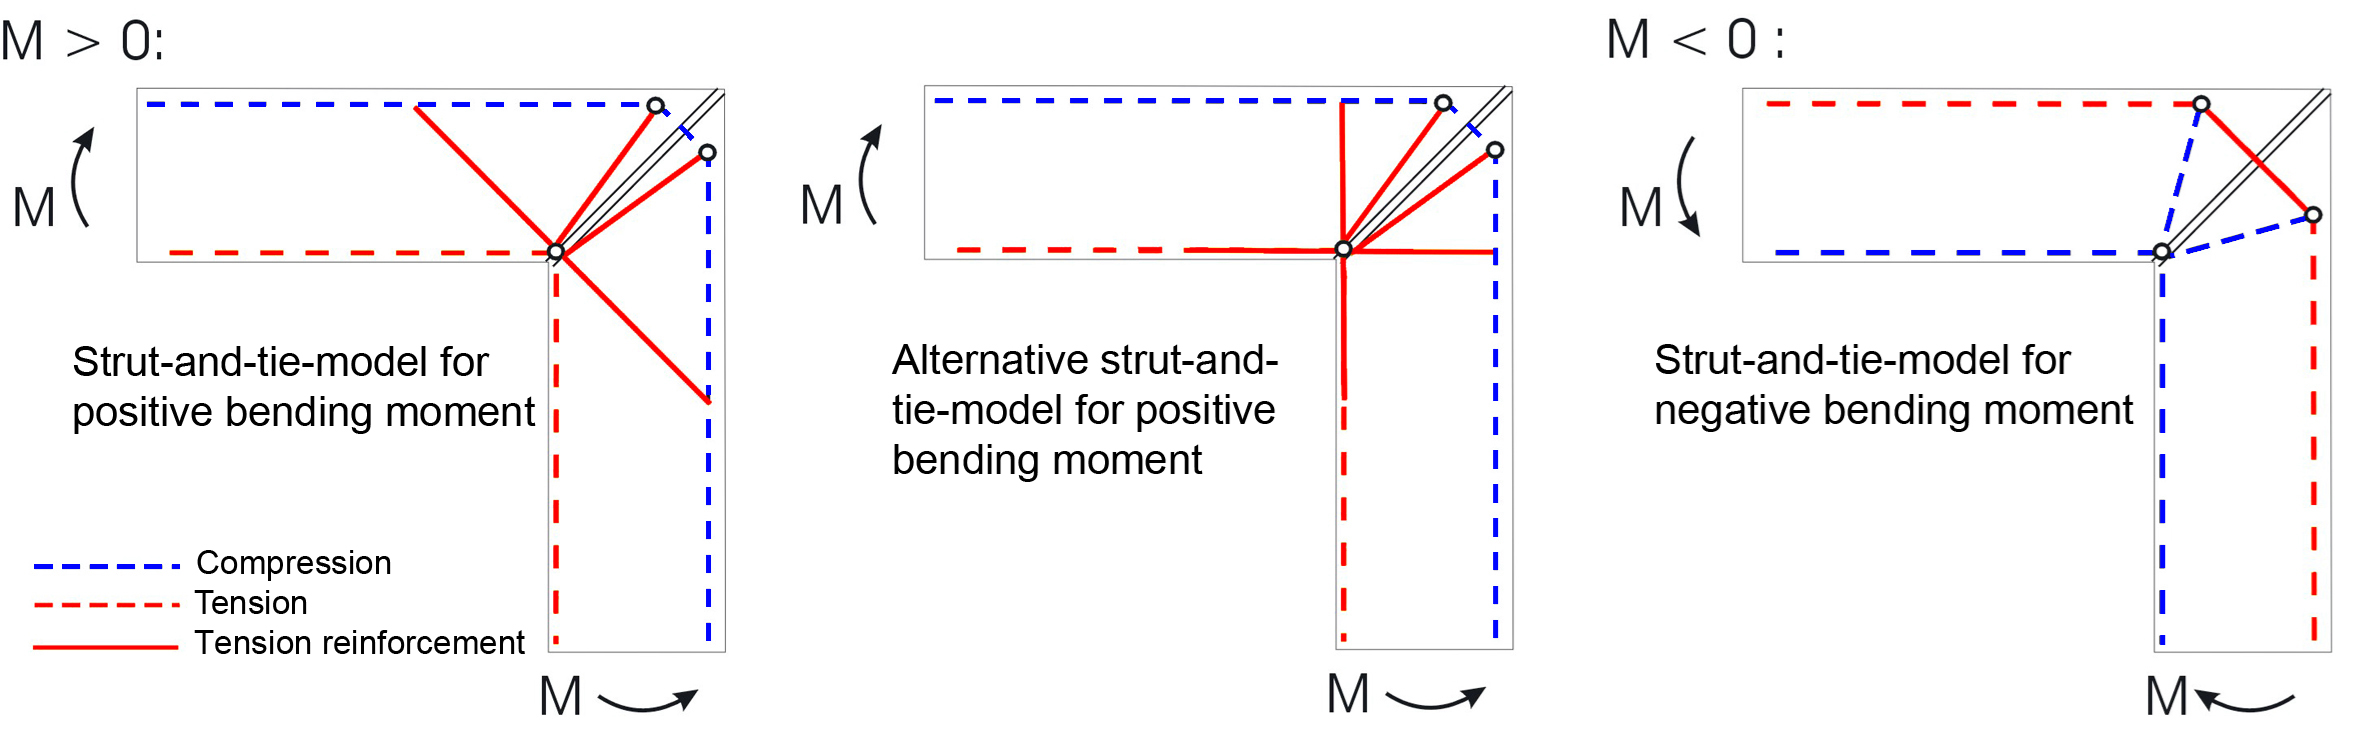 Reinforcing With Screws Rwth Aachen University Chair Of Structures The Following In Situ Frame And Its Bending Moment Diagrams Figure 2 Simple Strut Tie Models For Layout Screw